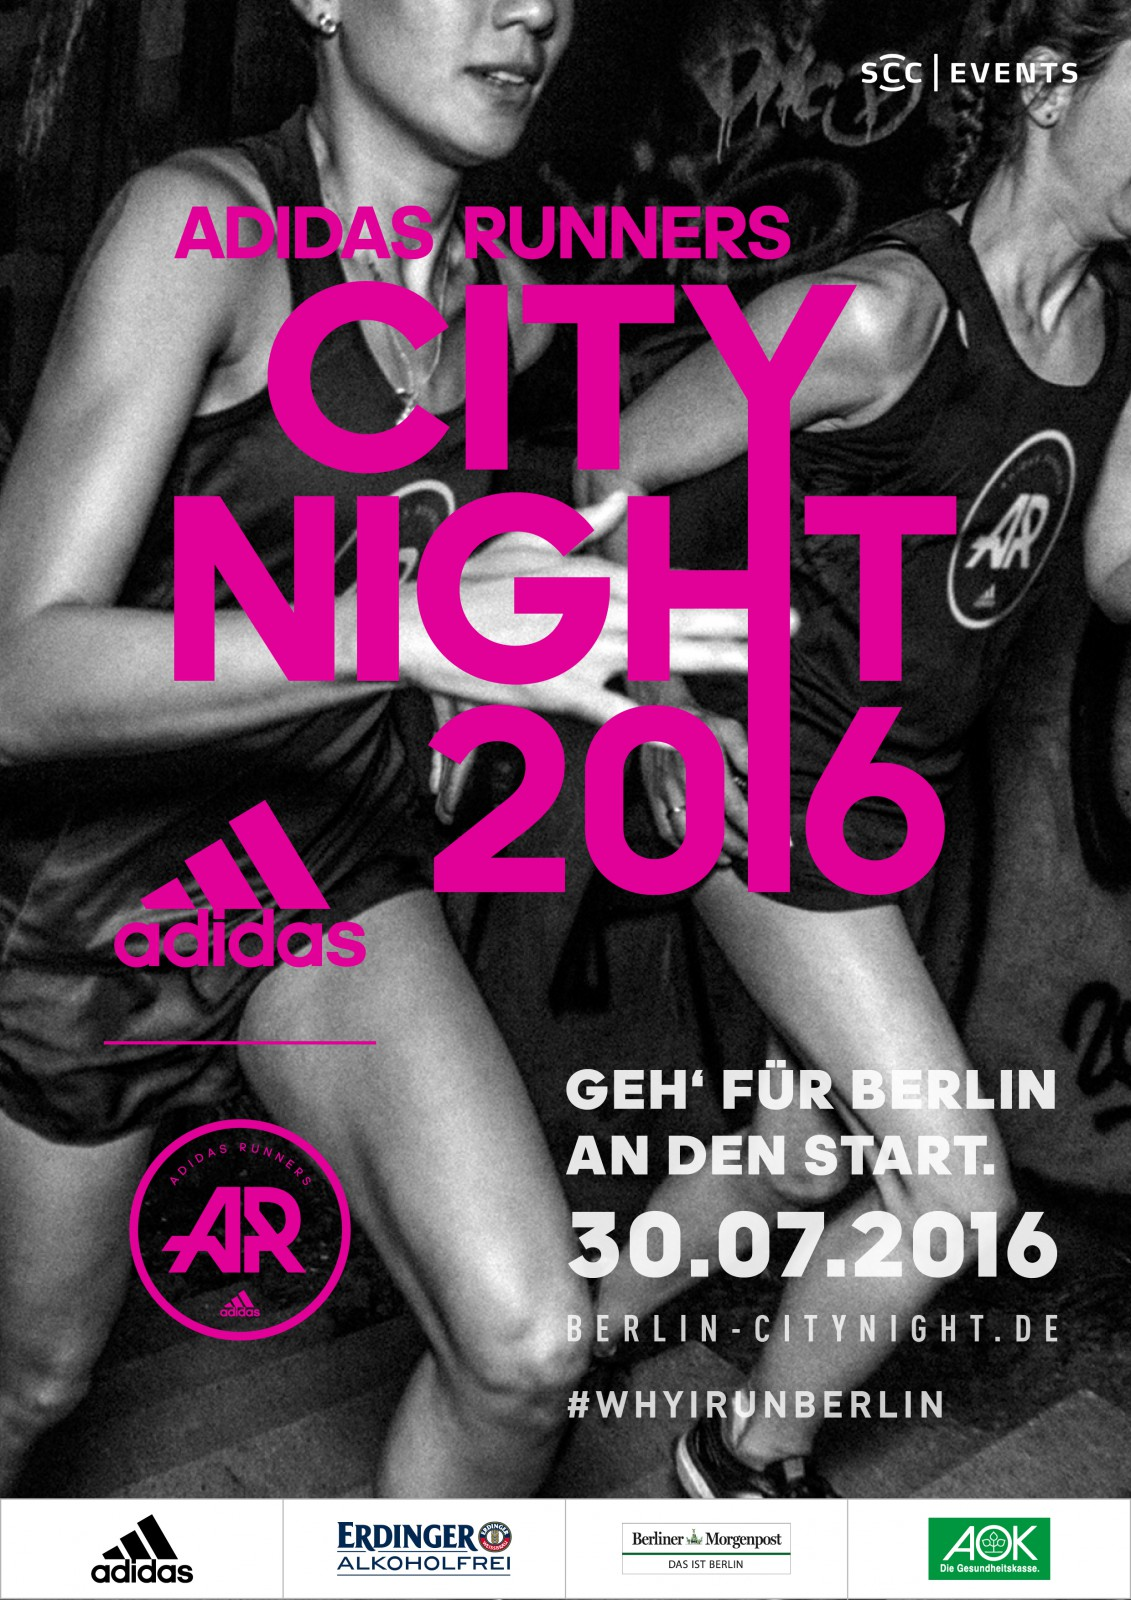 adidas Runners City Night 2016